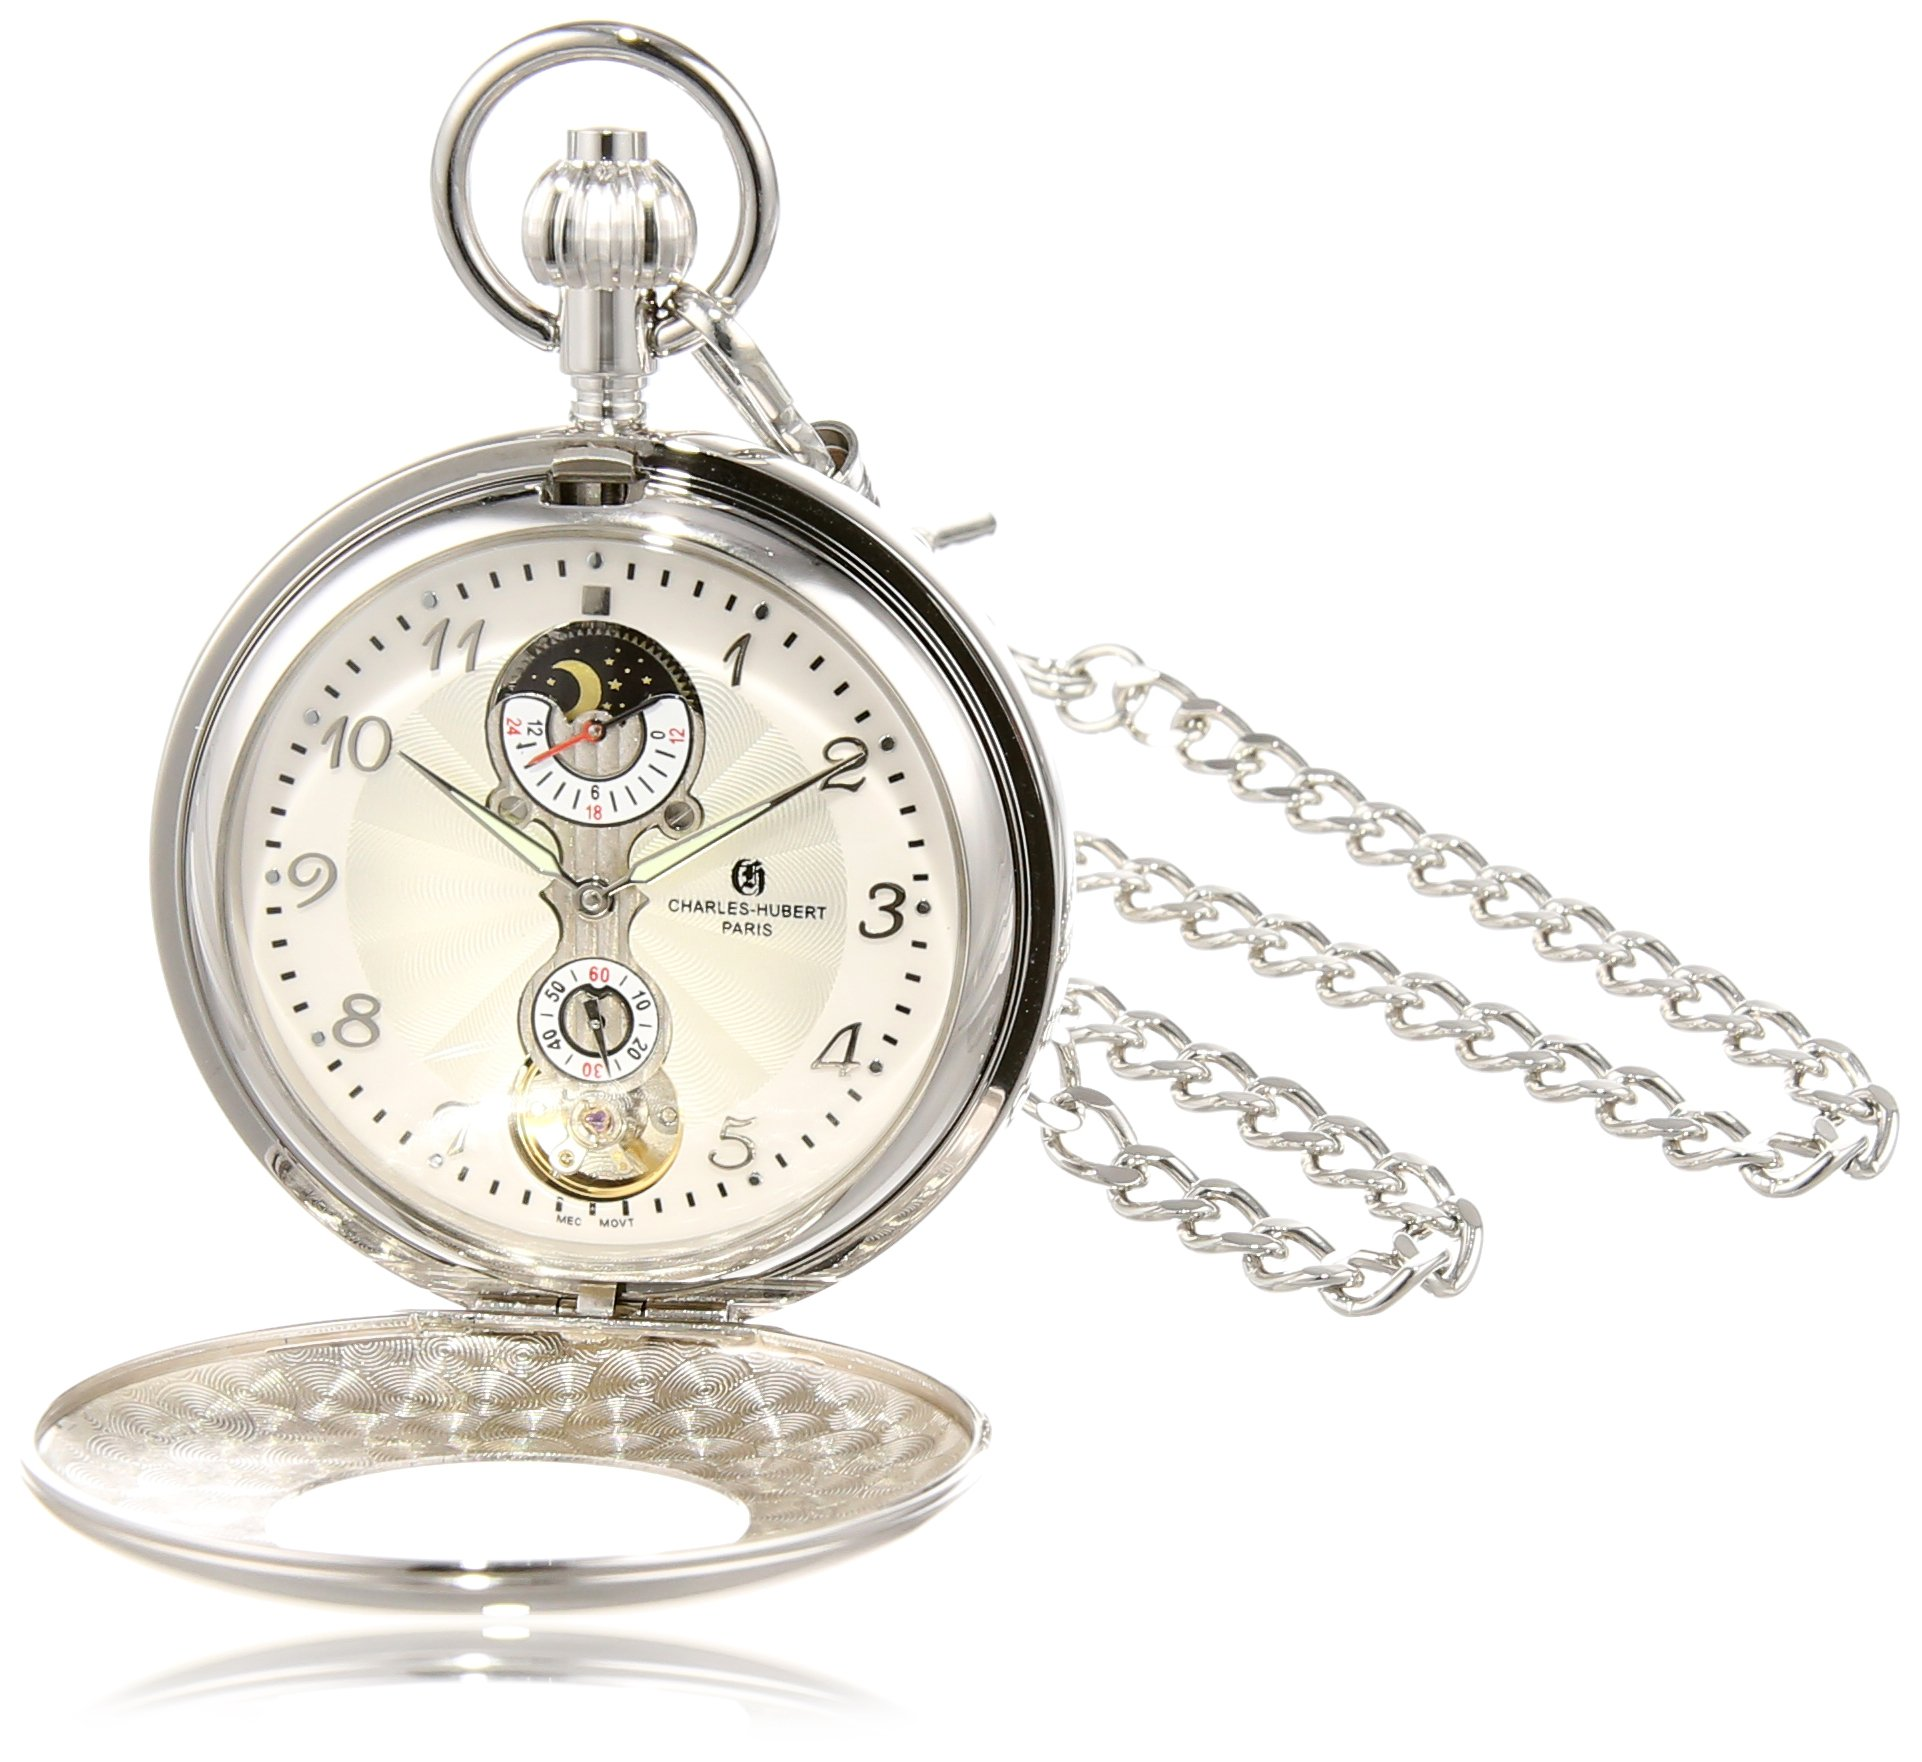 Charles-Hubert, Paris 3674 Mechanical Pocket Watch